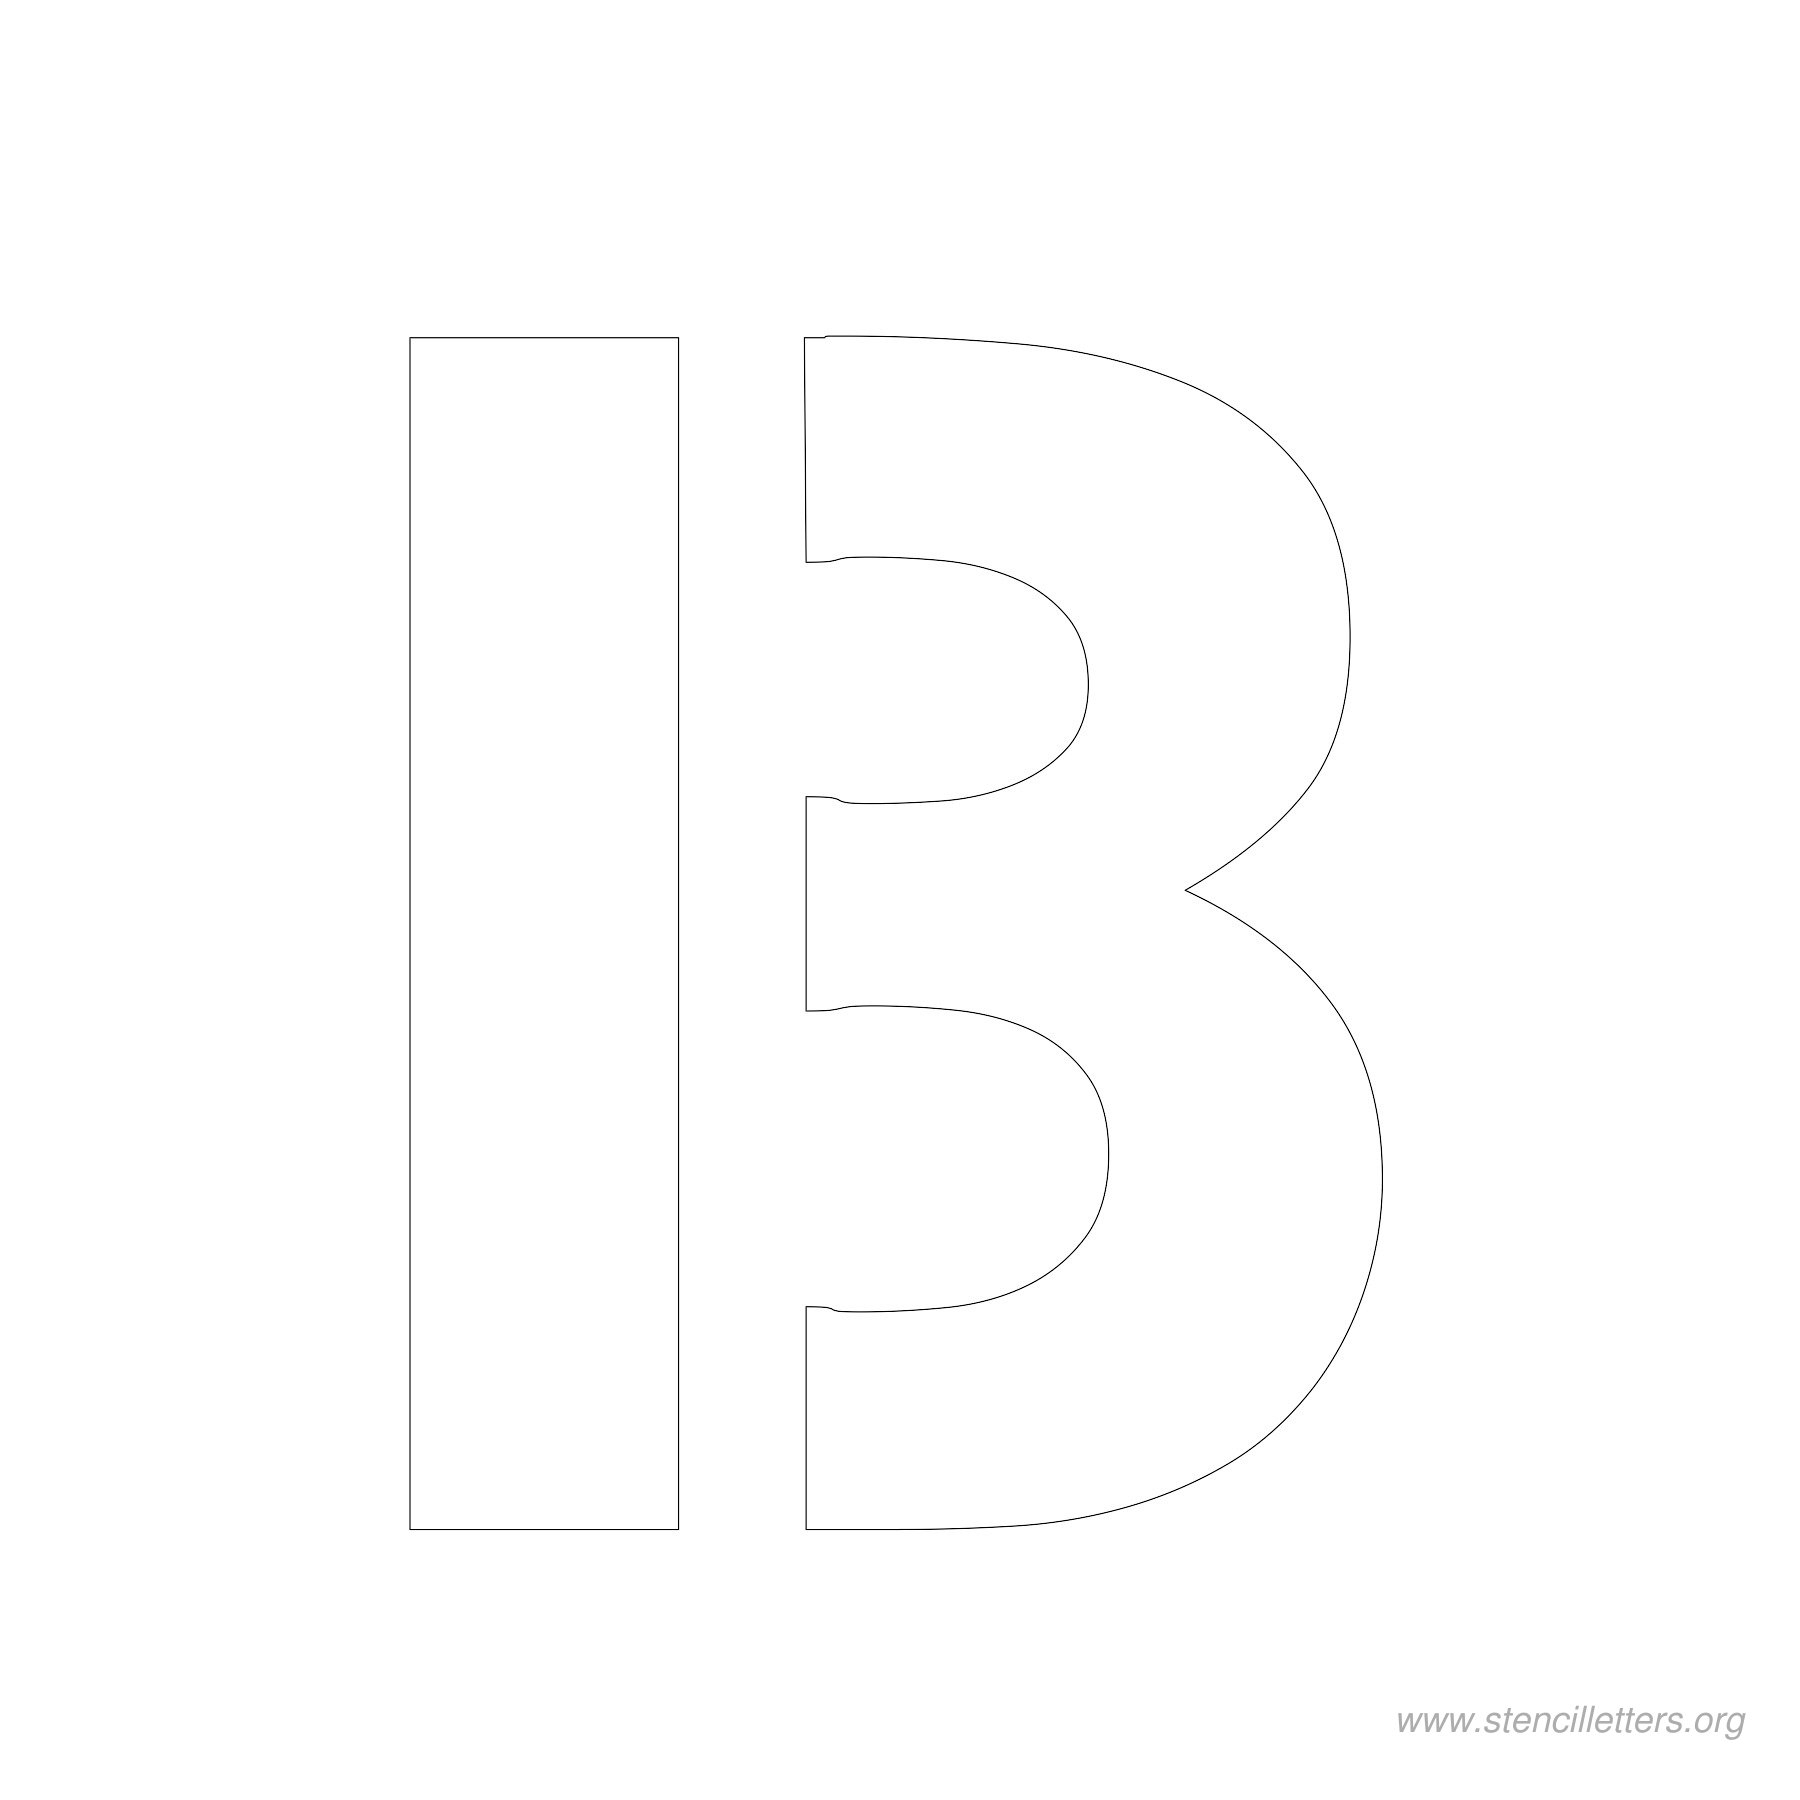 4 Inch Stencil Letters | Stencil Letters Org - Free Printable 12 Inch Letter Stencils